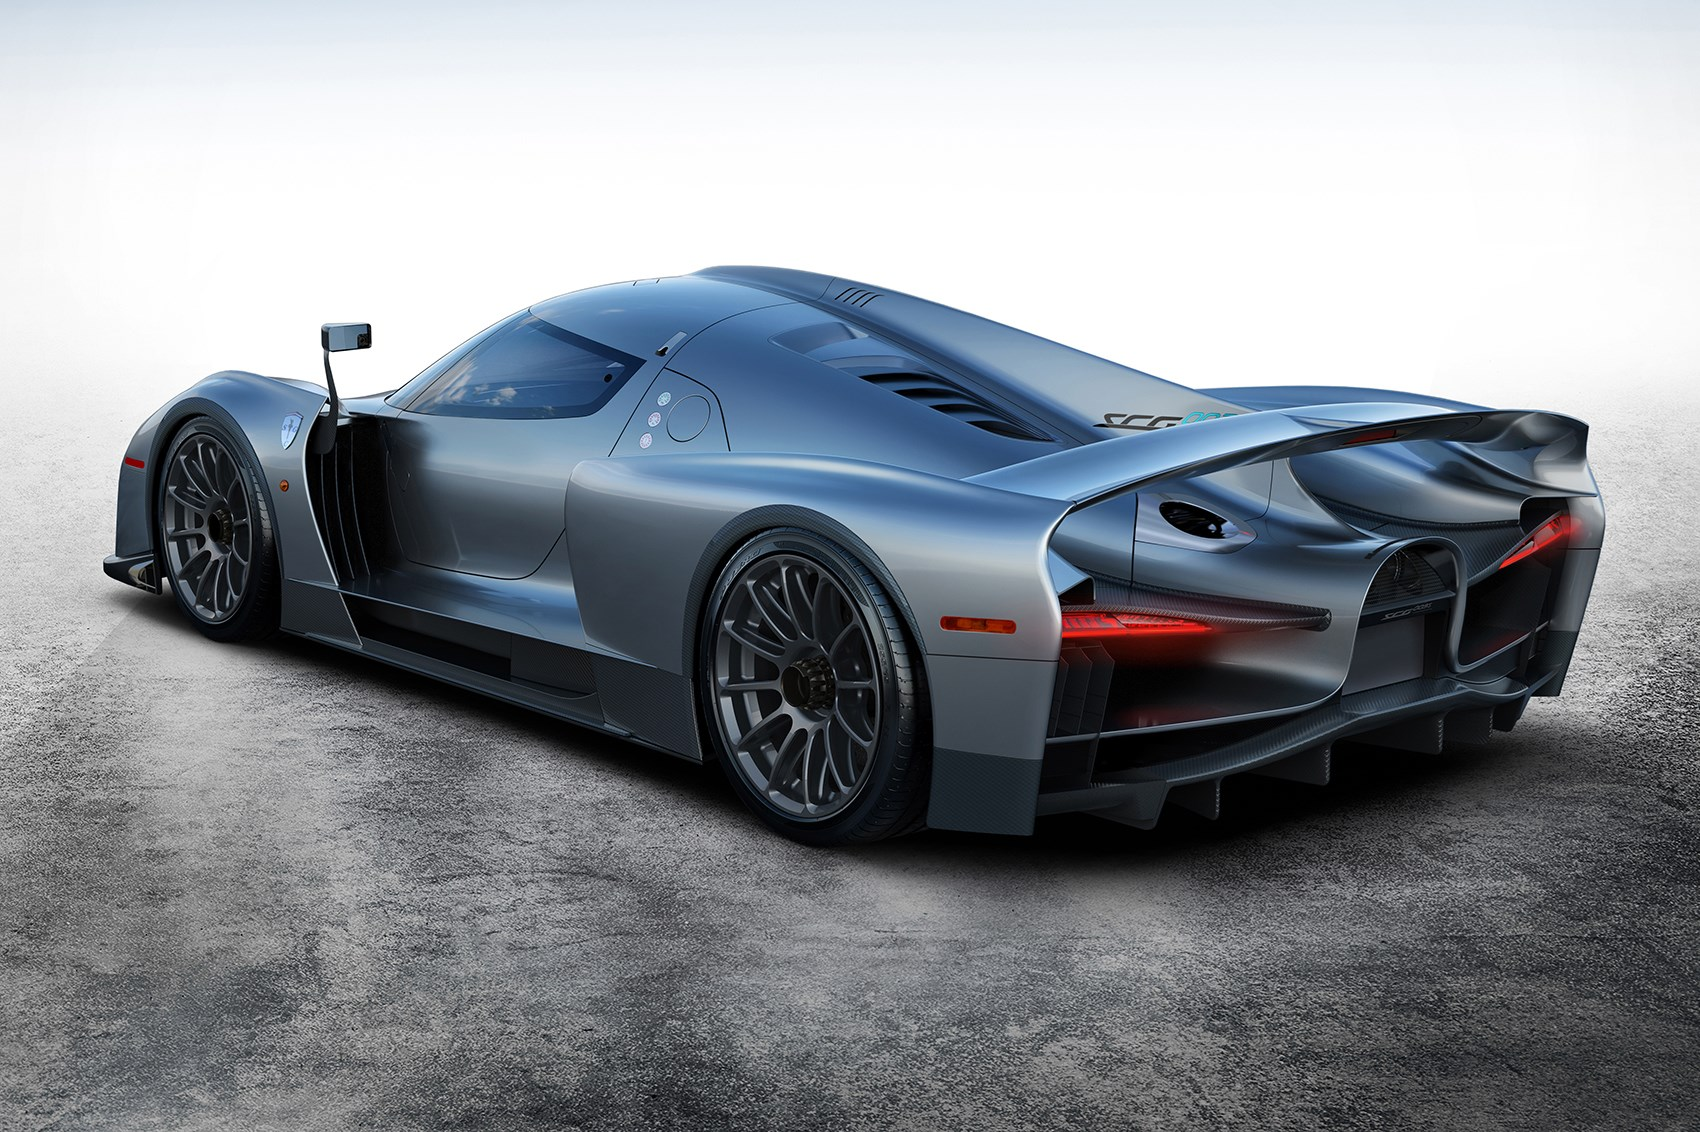 The Quickest Supercar Money Can Buy Up Close With The Scuderia Cameron Glickenhaus Scg 003s By